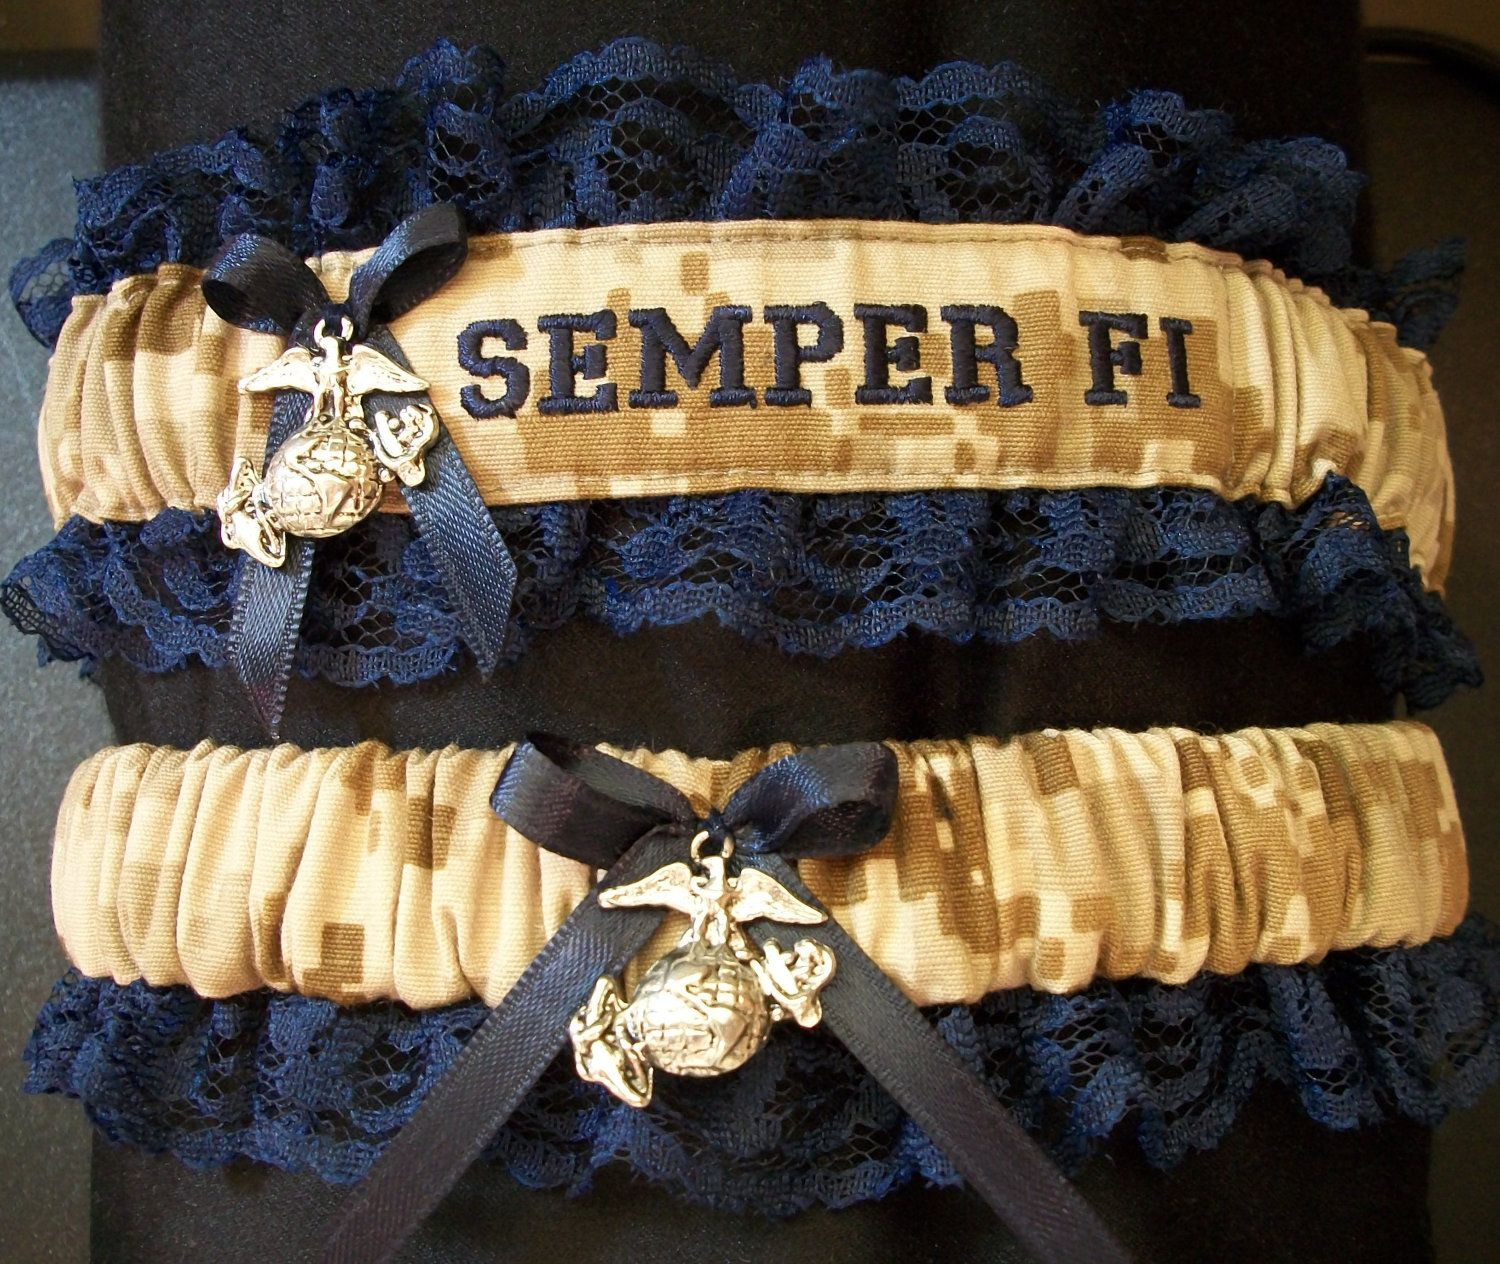 Us Marine Set With Semper Fi Embroidered On It And An Ega Charm Both Garters 28 00 Via Etsy